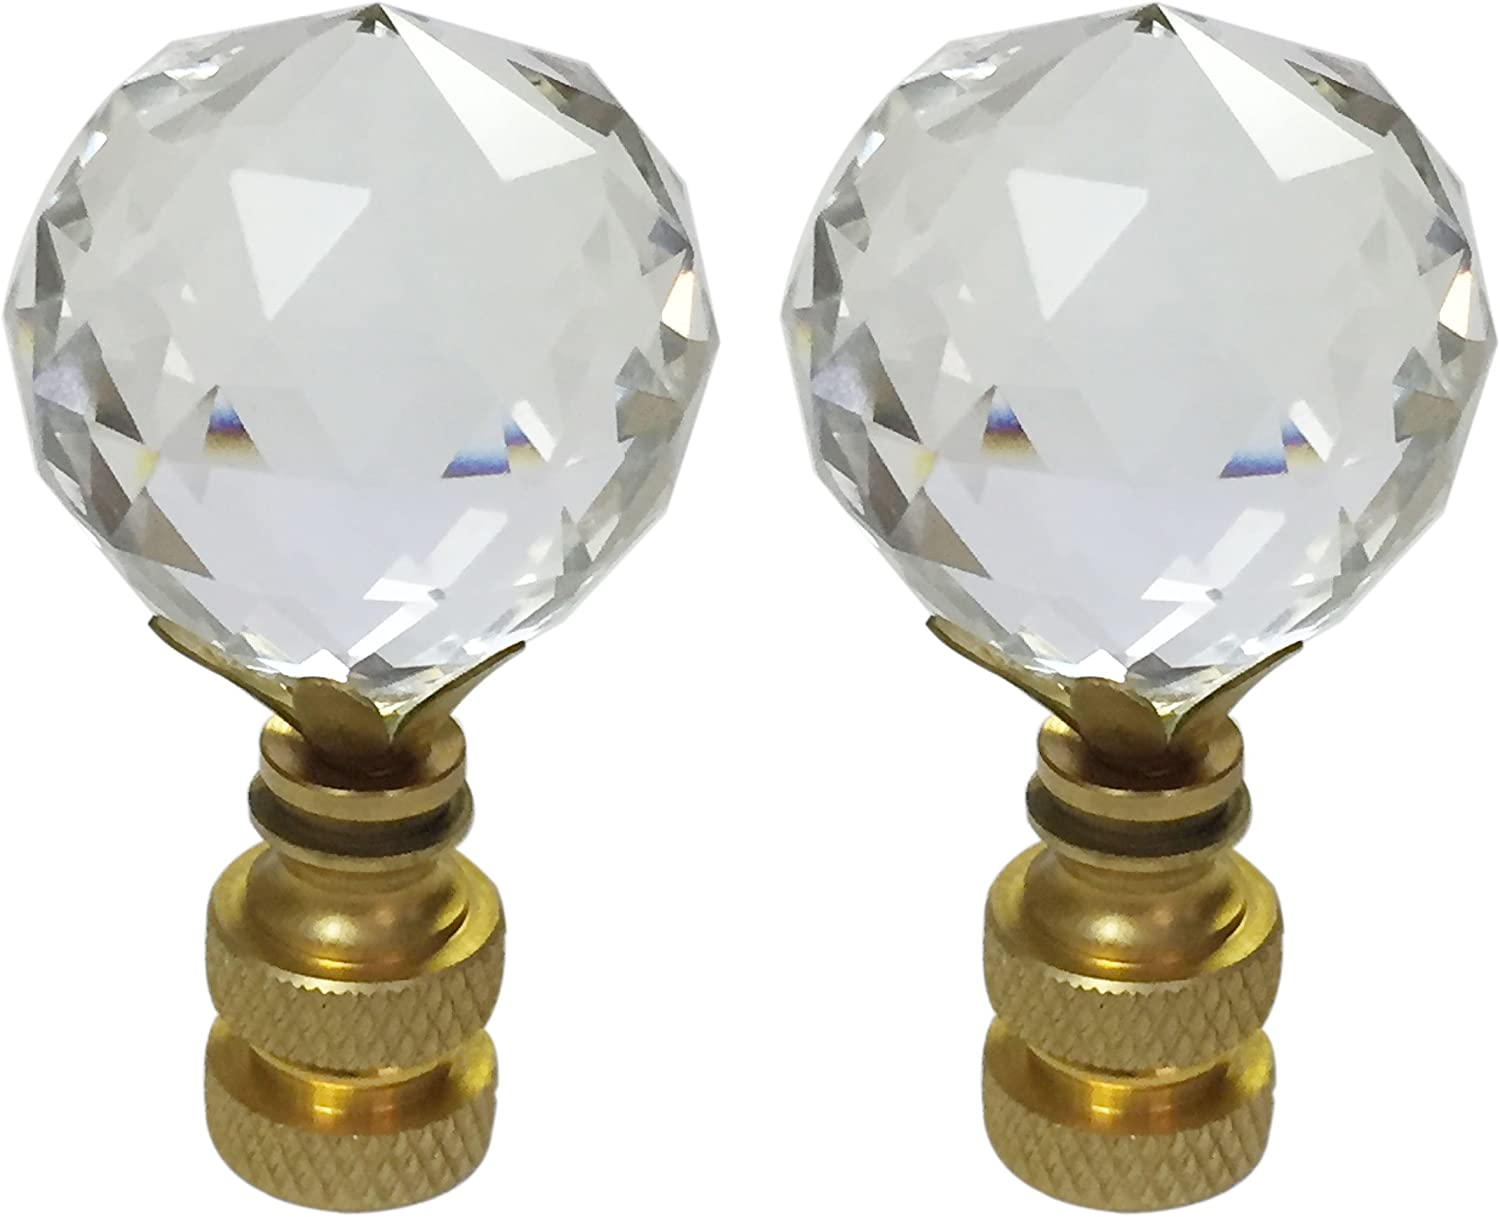 Royal Designs Max 66% OFF Large Faceted Diamond Cut Crystal L Popular brand in the world K9 Clear 1.75